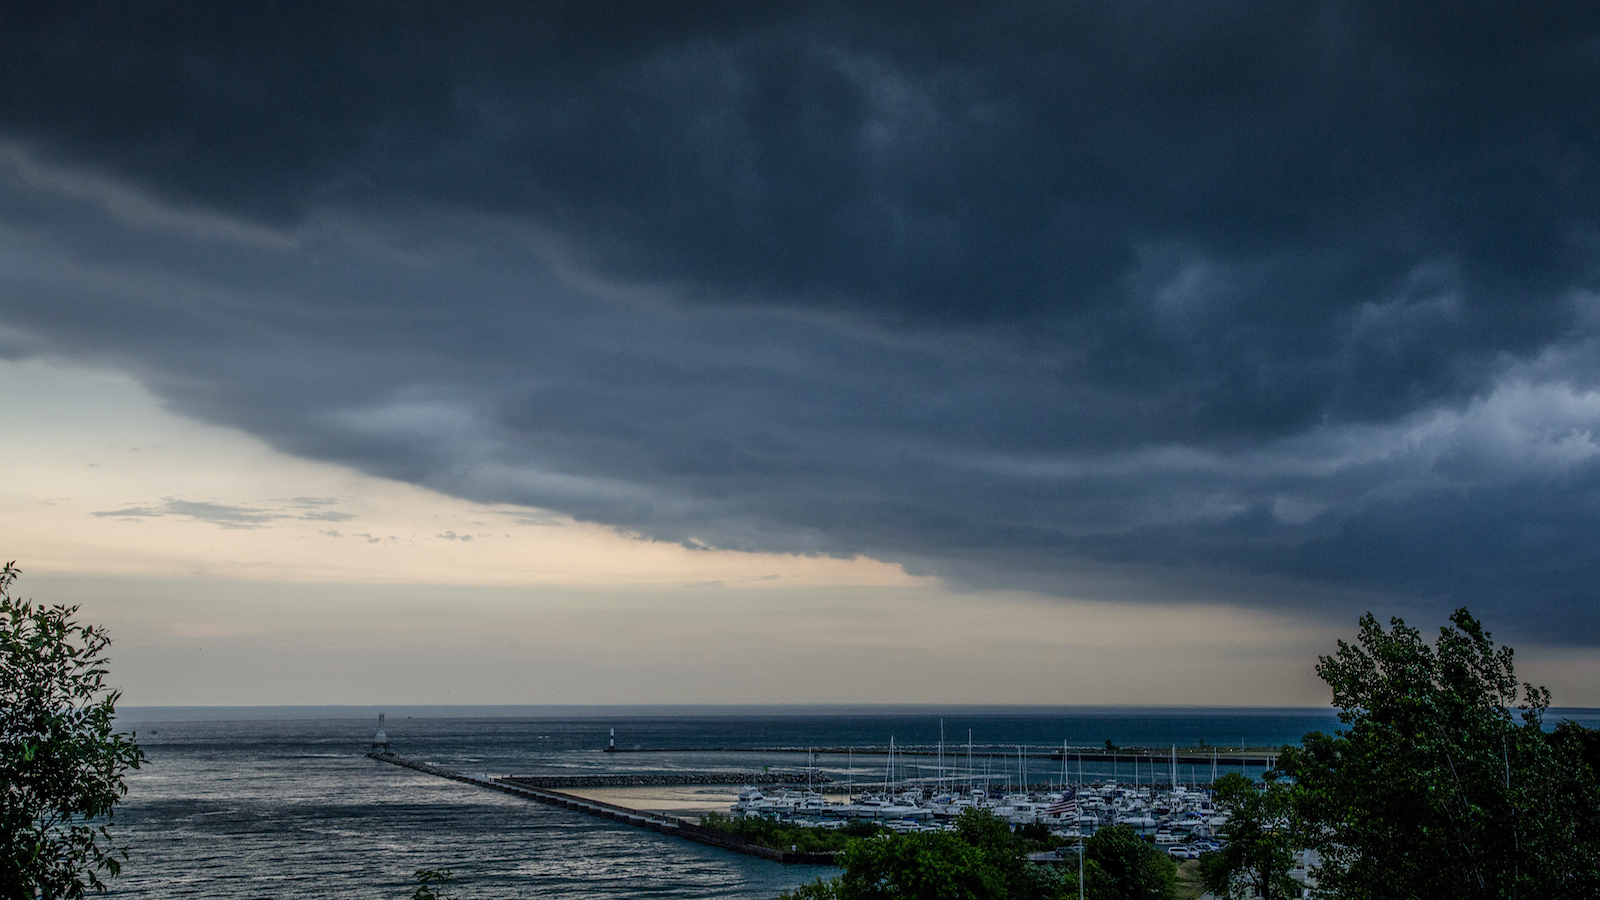 Storm clouds roll across the sky over the marina Thursday, July, 21, 2016 in Port Washington, Wi. (AP Photo/Jeffrey Phelps)